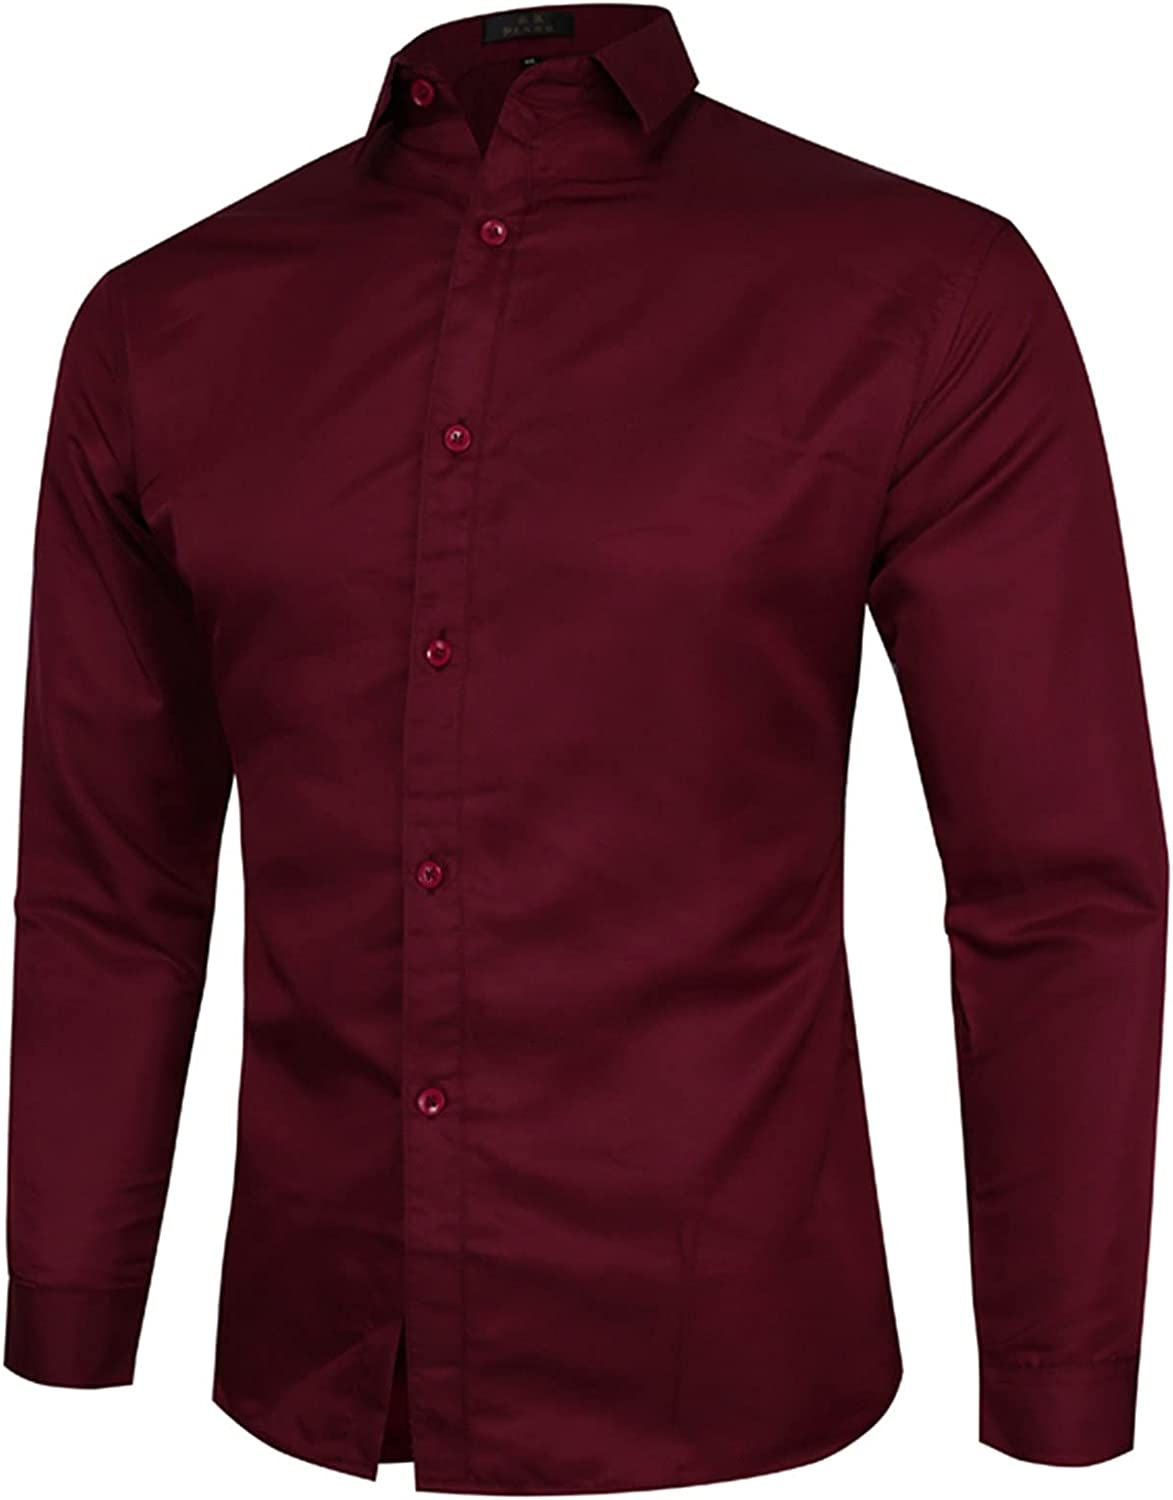 Mens Long Sleeve Slim Fit Dress Shirts Solid Color Casual Business Formal Button Up Shirts with Pocket S-5XL